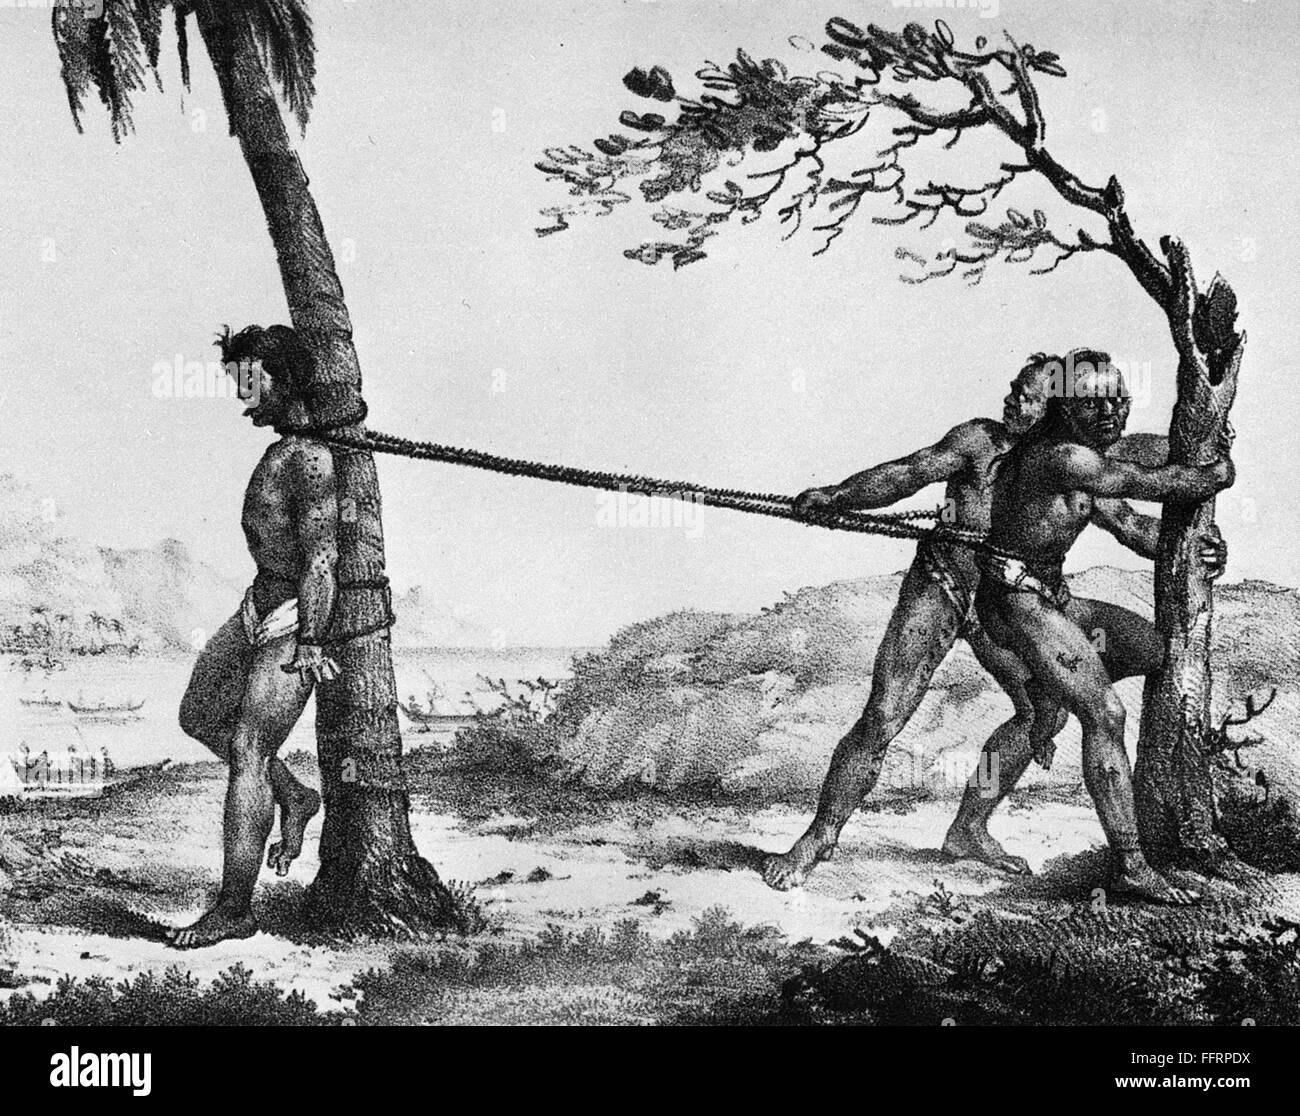 HAWAII: DEATH PENALTY, 1819. /nA native Hawaiian criminal is executed by  strangulation. Lithograph by Jacques Etienne Victor Arago, 1819.